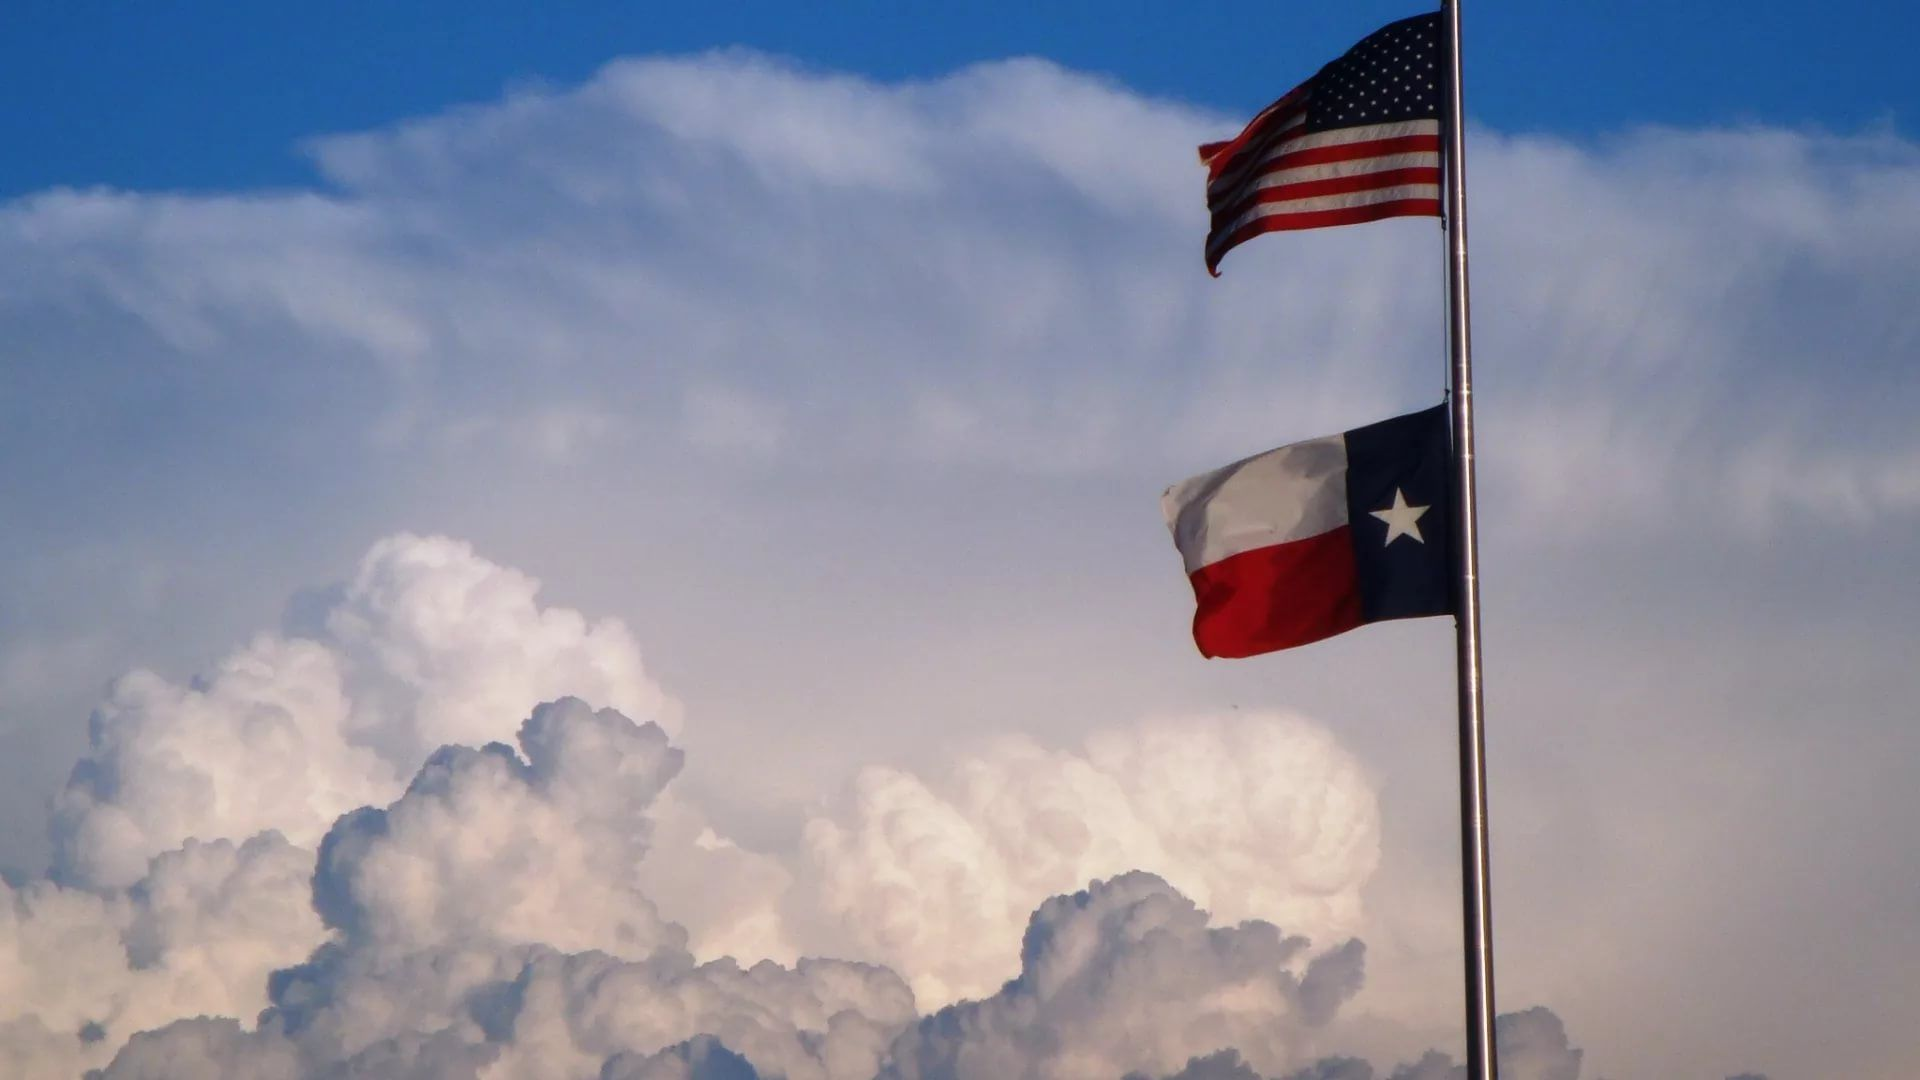 Texas Flag download wallpaper image